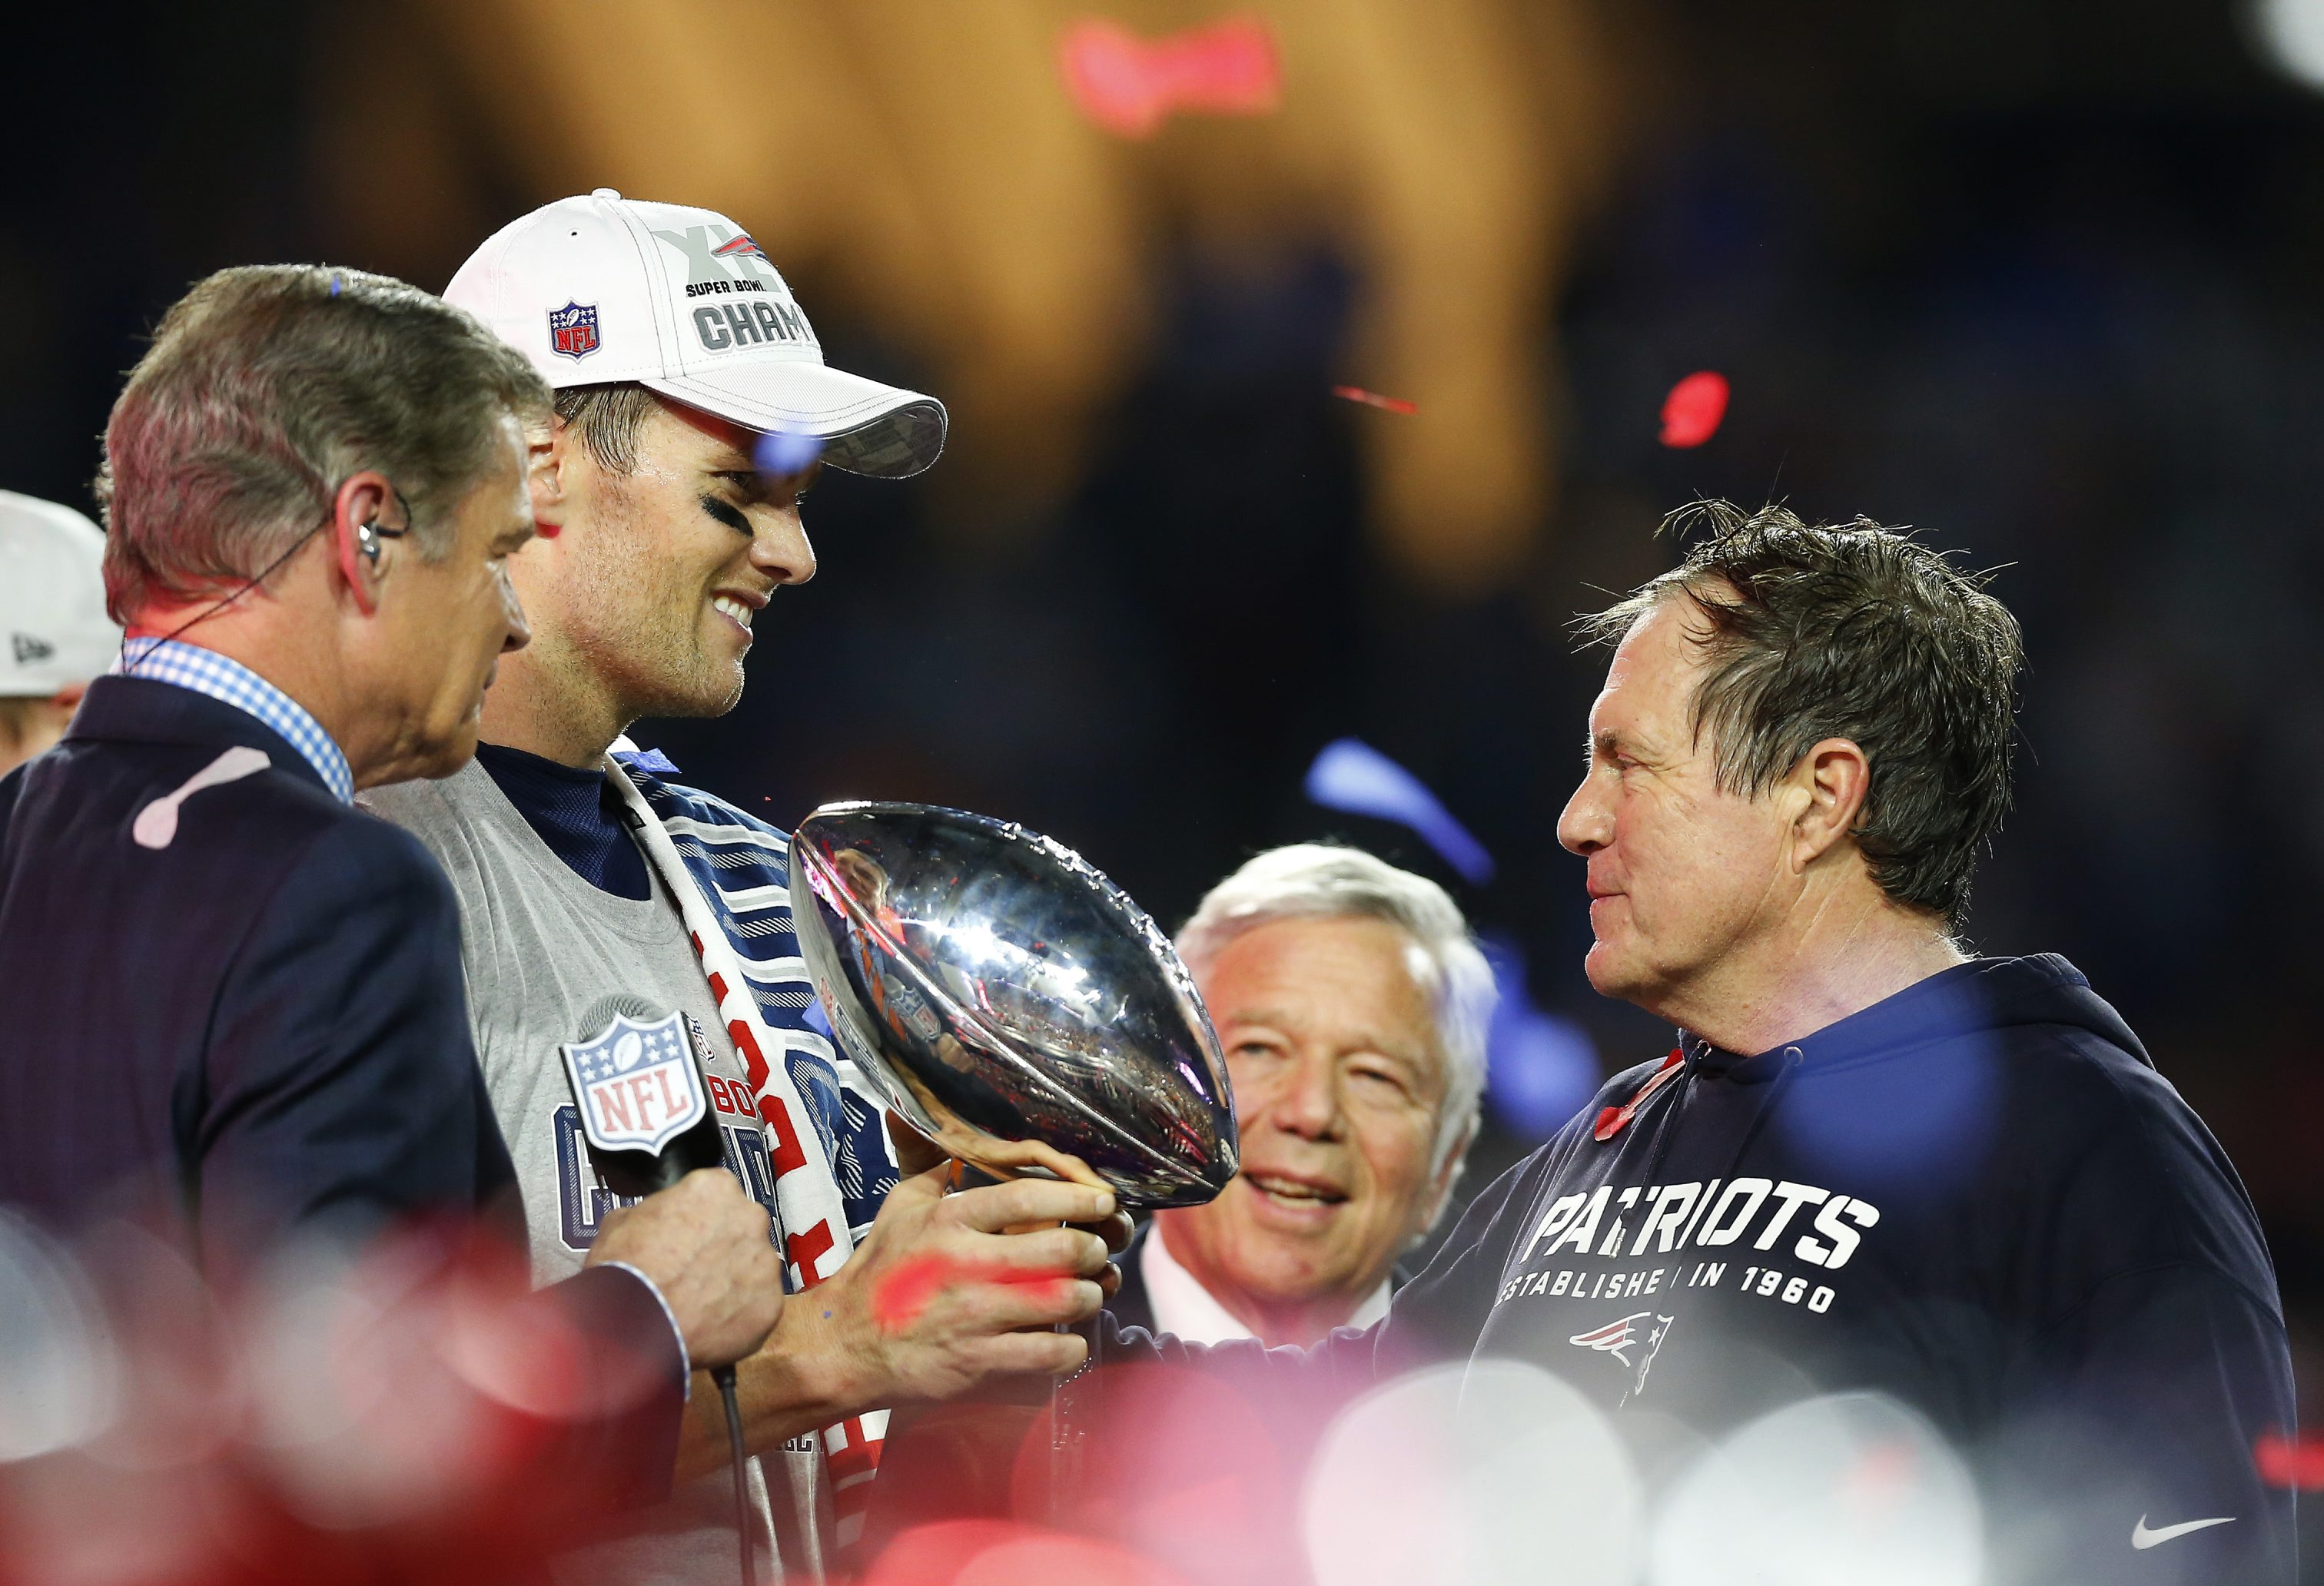 Tom Brady, Patriots owner Robert Kraft and coach Bill Belichick have the Lombardi Trophy, but at what price to their reputations?